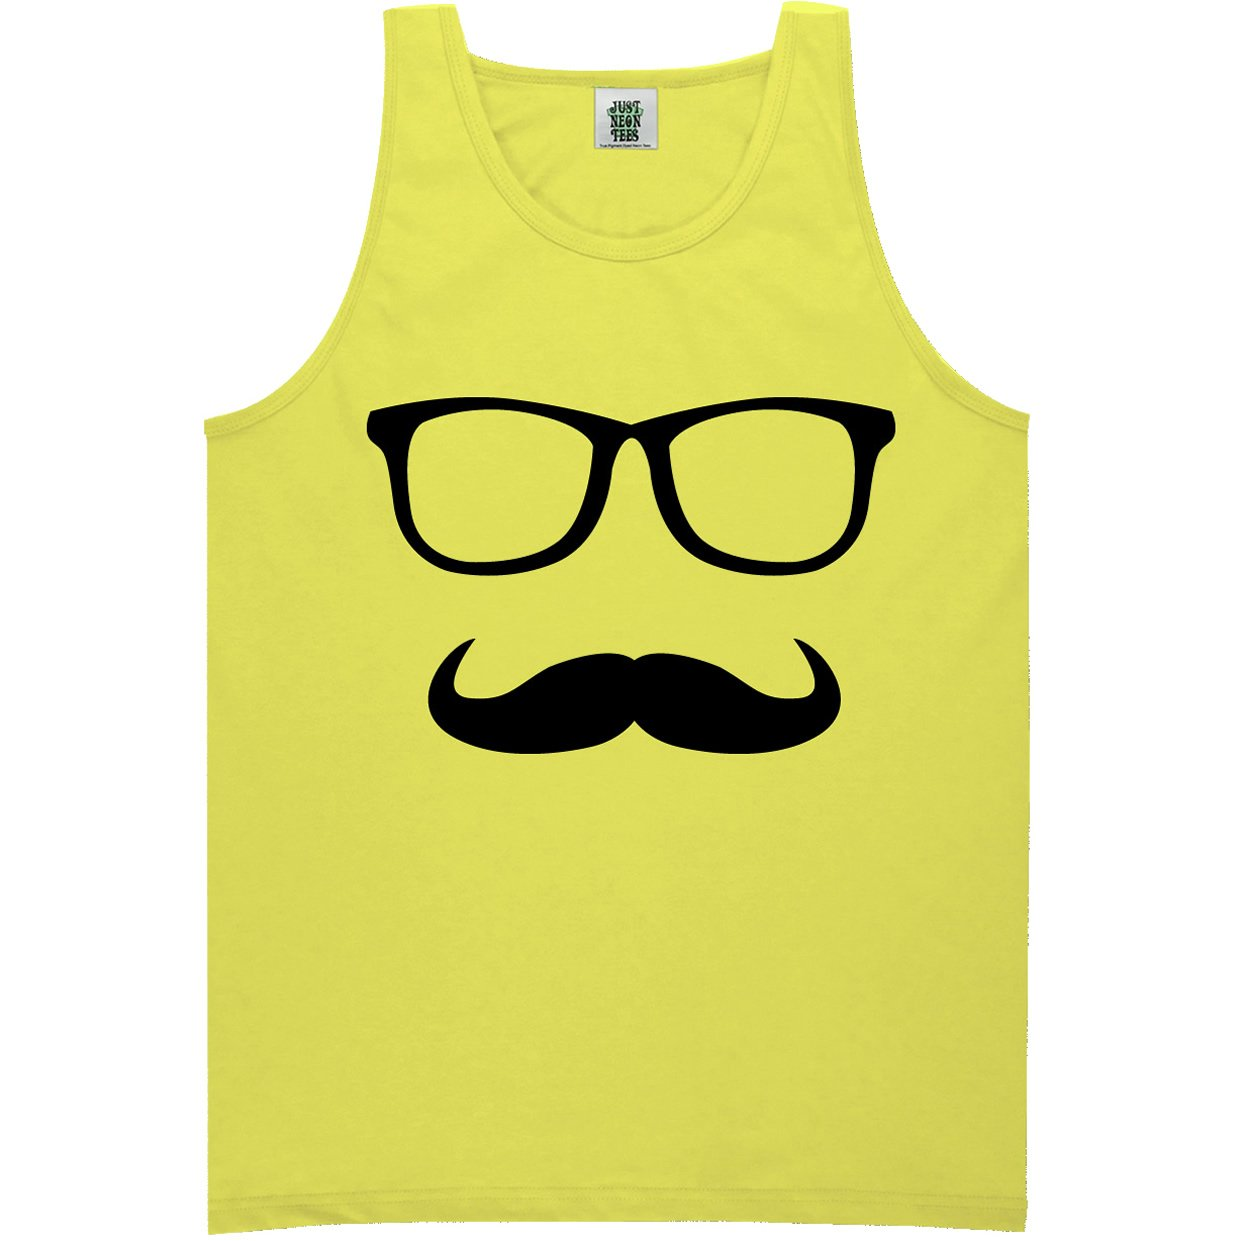 Mustache and Glasses Bright Neon Yellow Tank Top - XX-Large